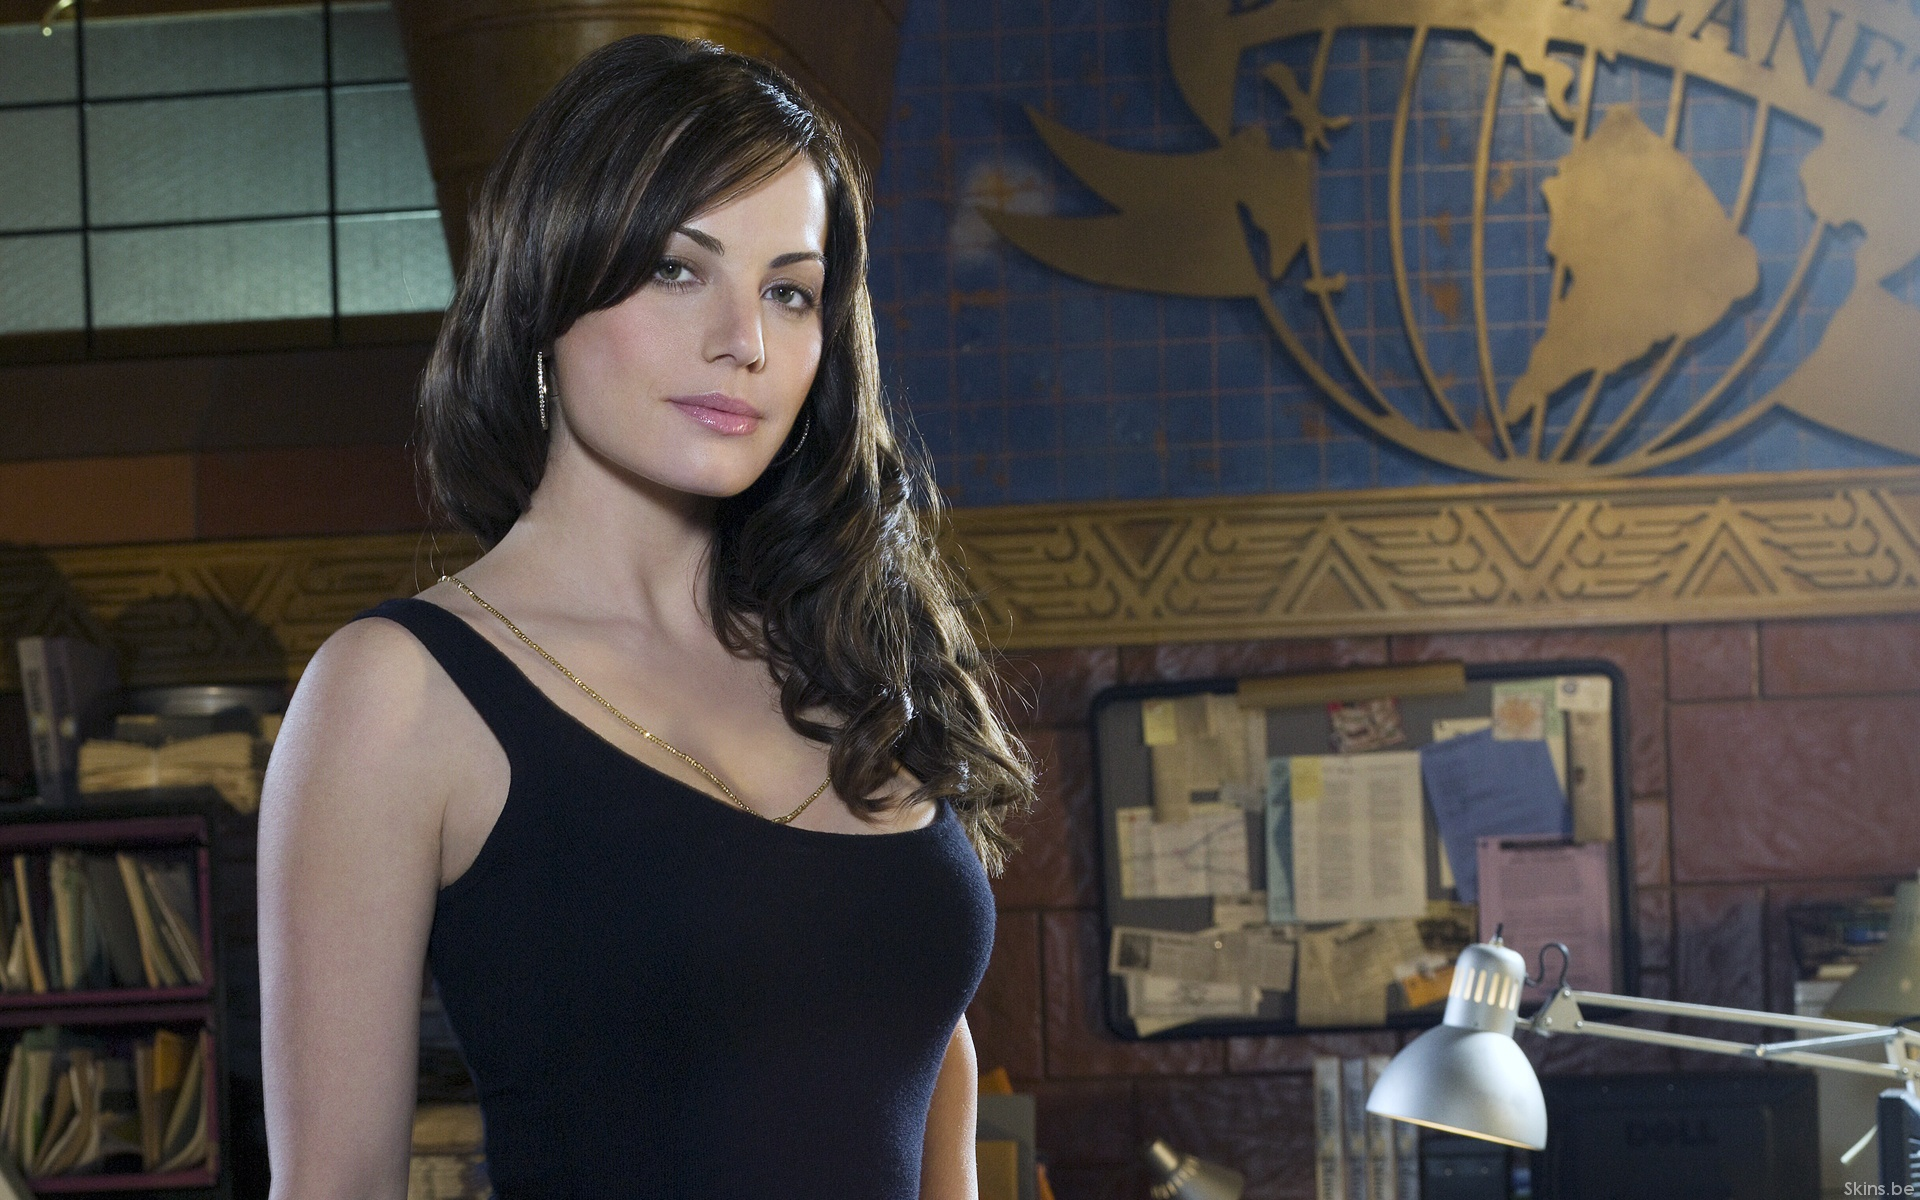 erica durance images wallpaper - photo #12